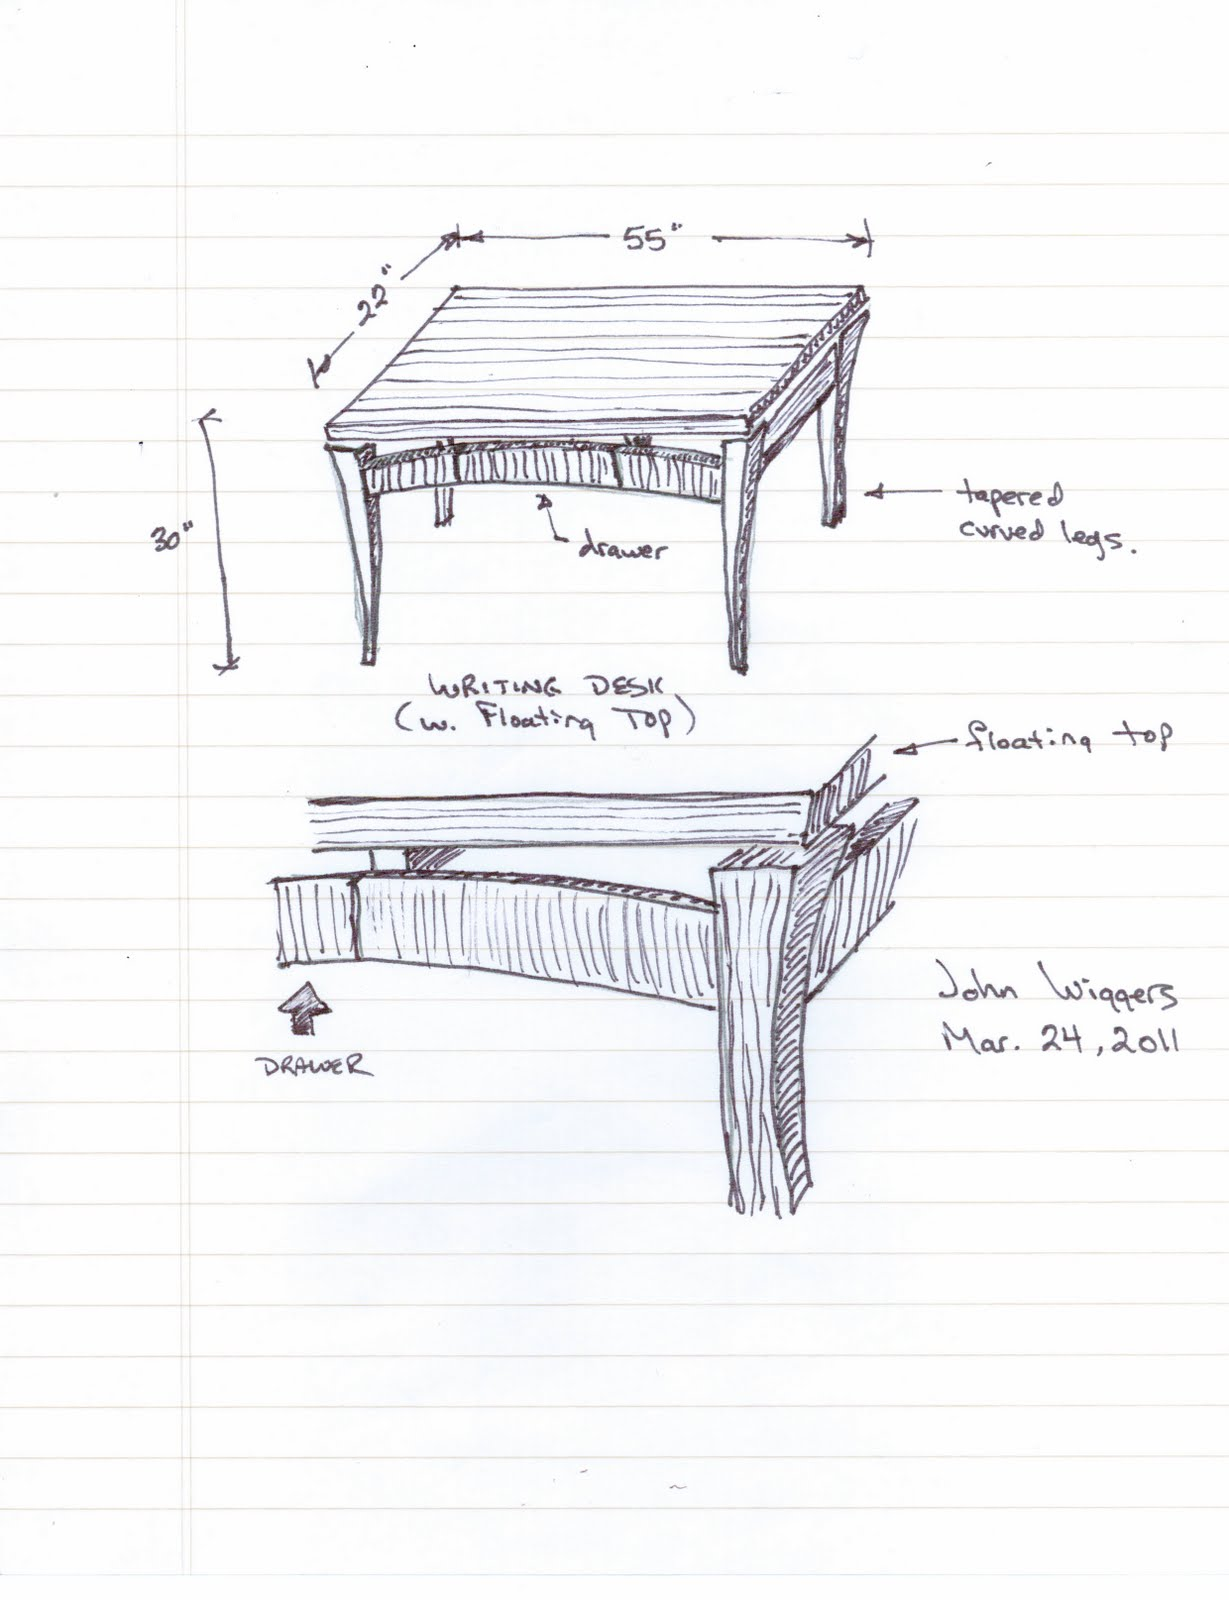 Musings of a furniture maker custom writing desk part